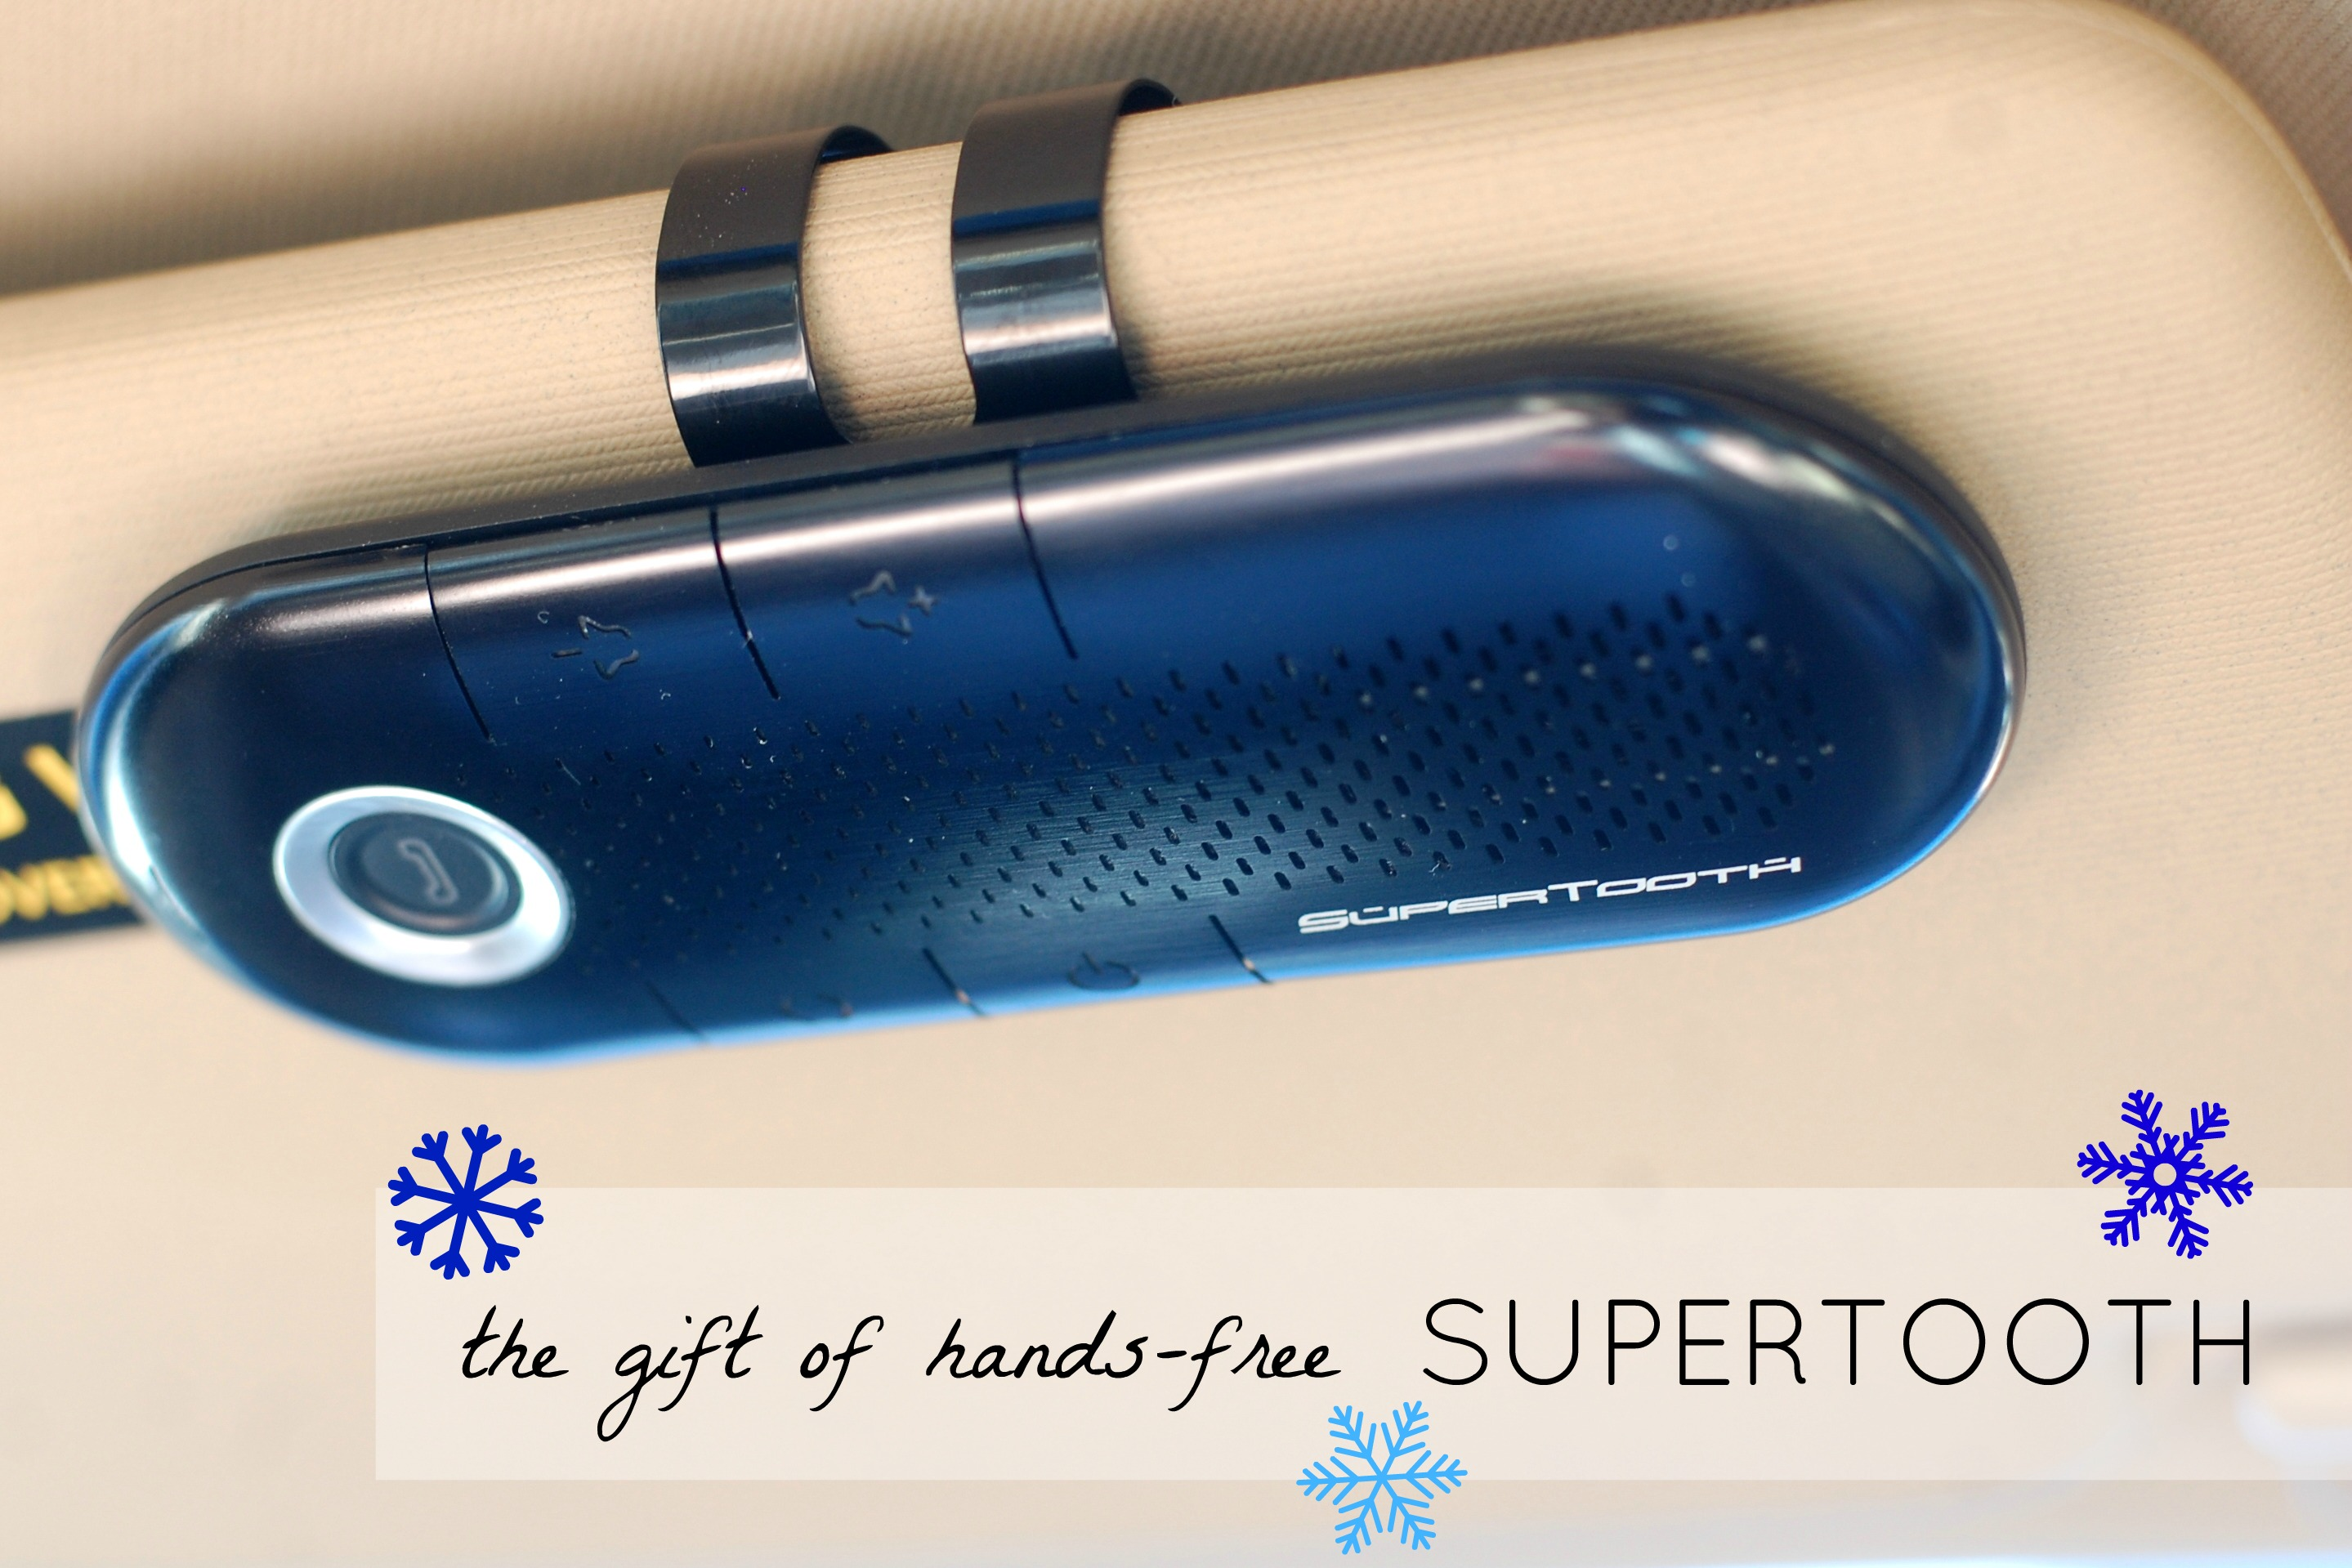 Supertooth Crystal gift of handsfree